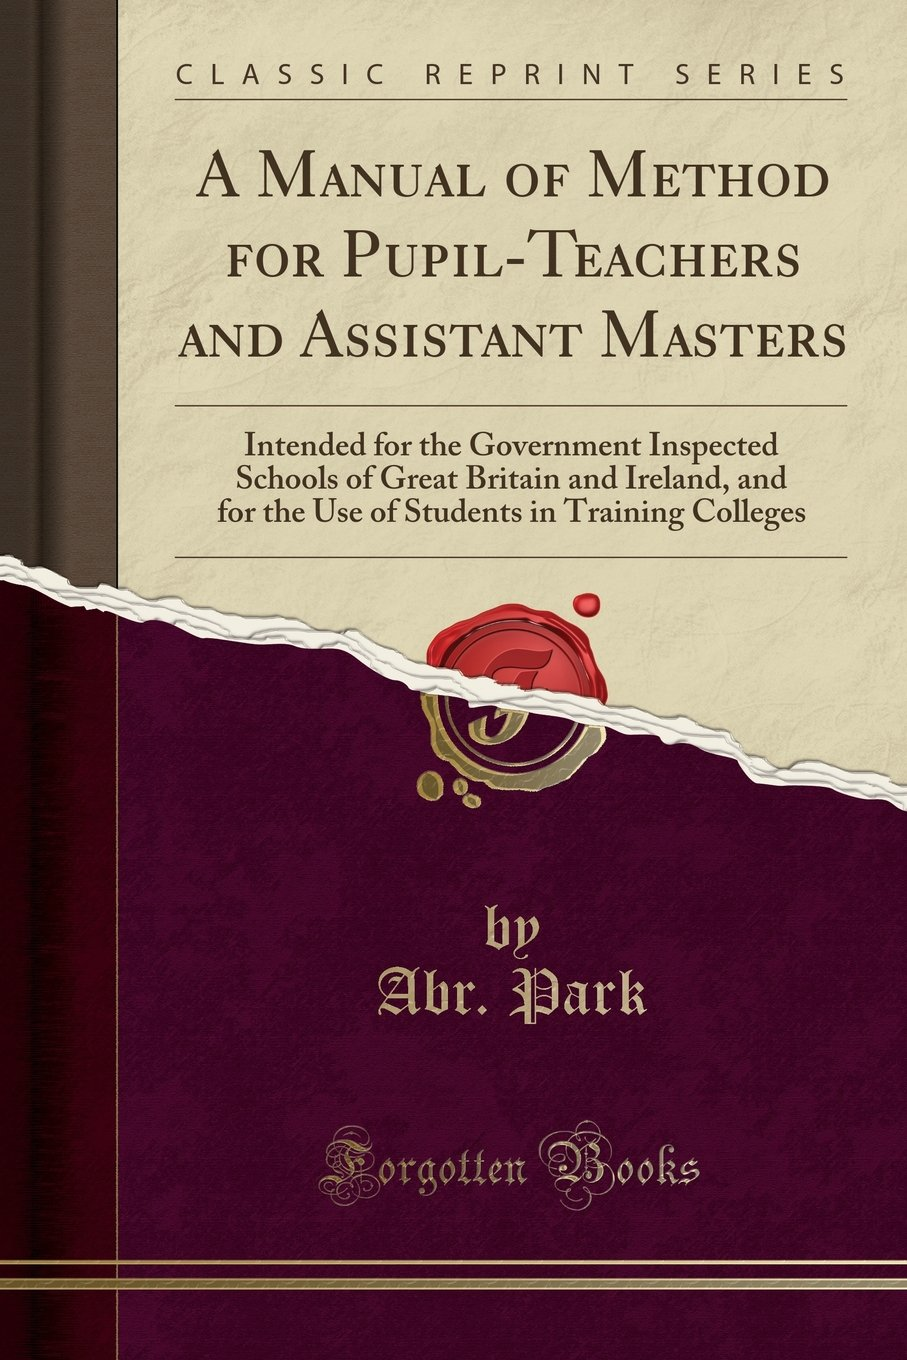 Read Online A Manual of Method for Pupil-Teachers and Assistant Masters: Intended for the Government Inspected Schools of Great Britain and Ireland, and for the ... in Training Colleges (Classic Reprint) PDF